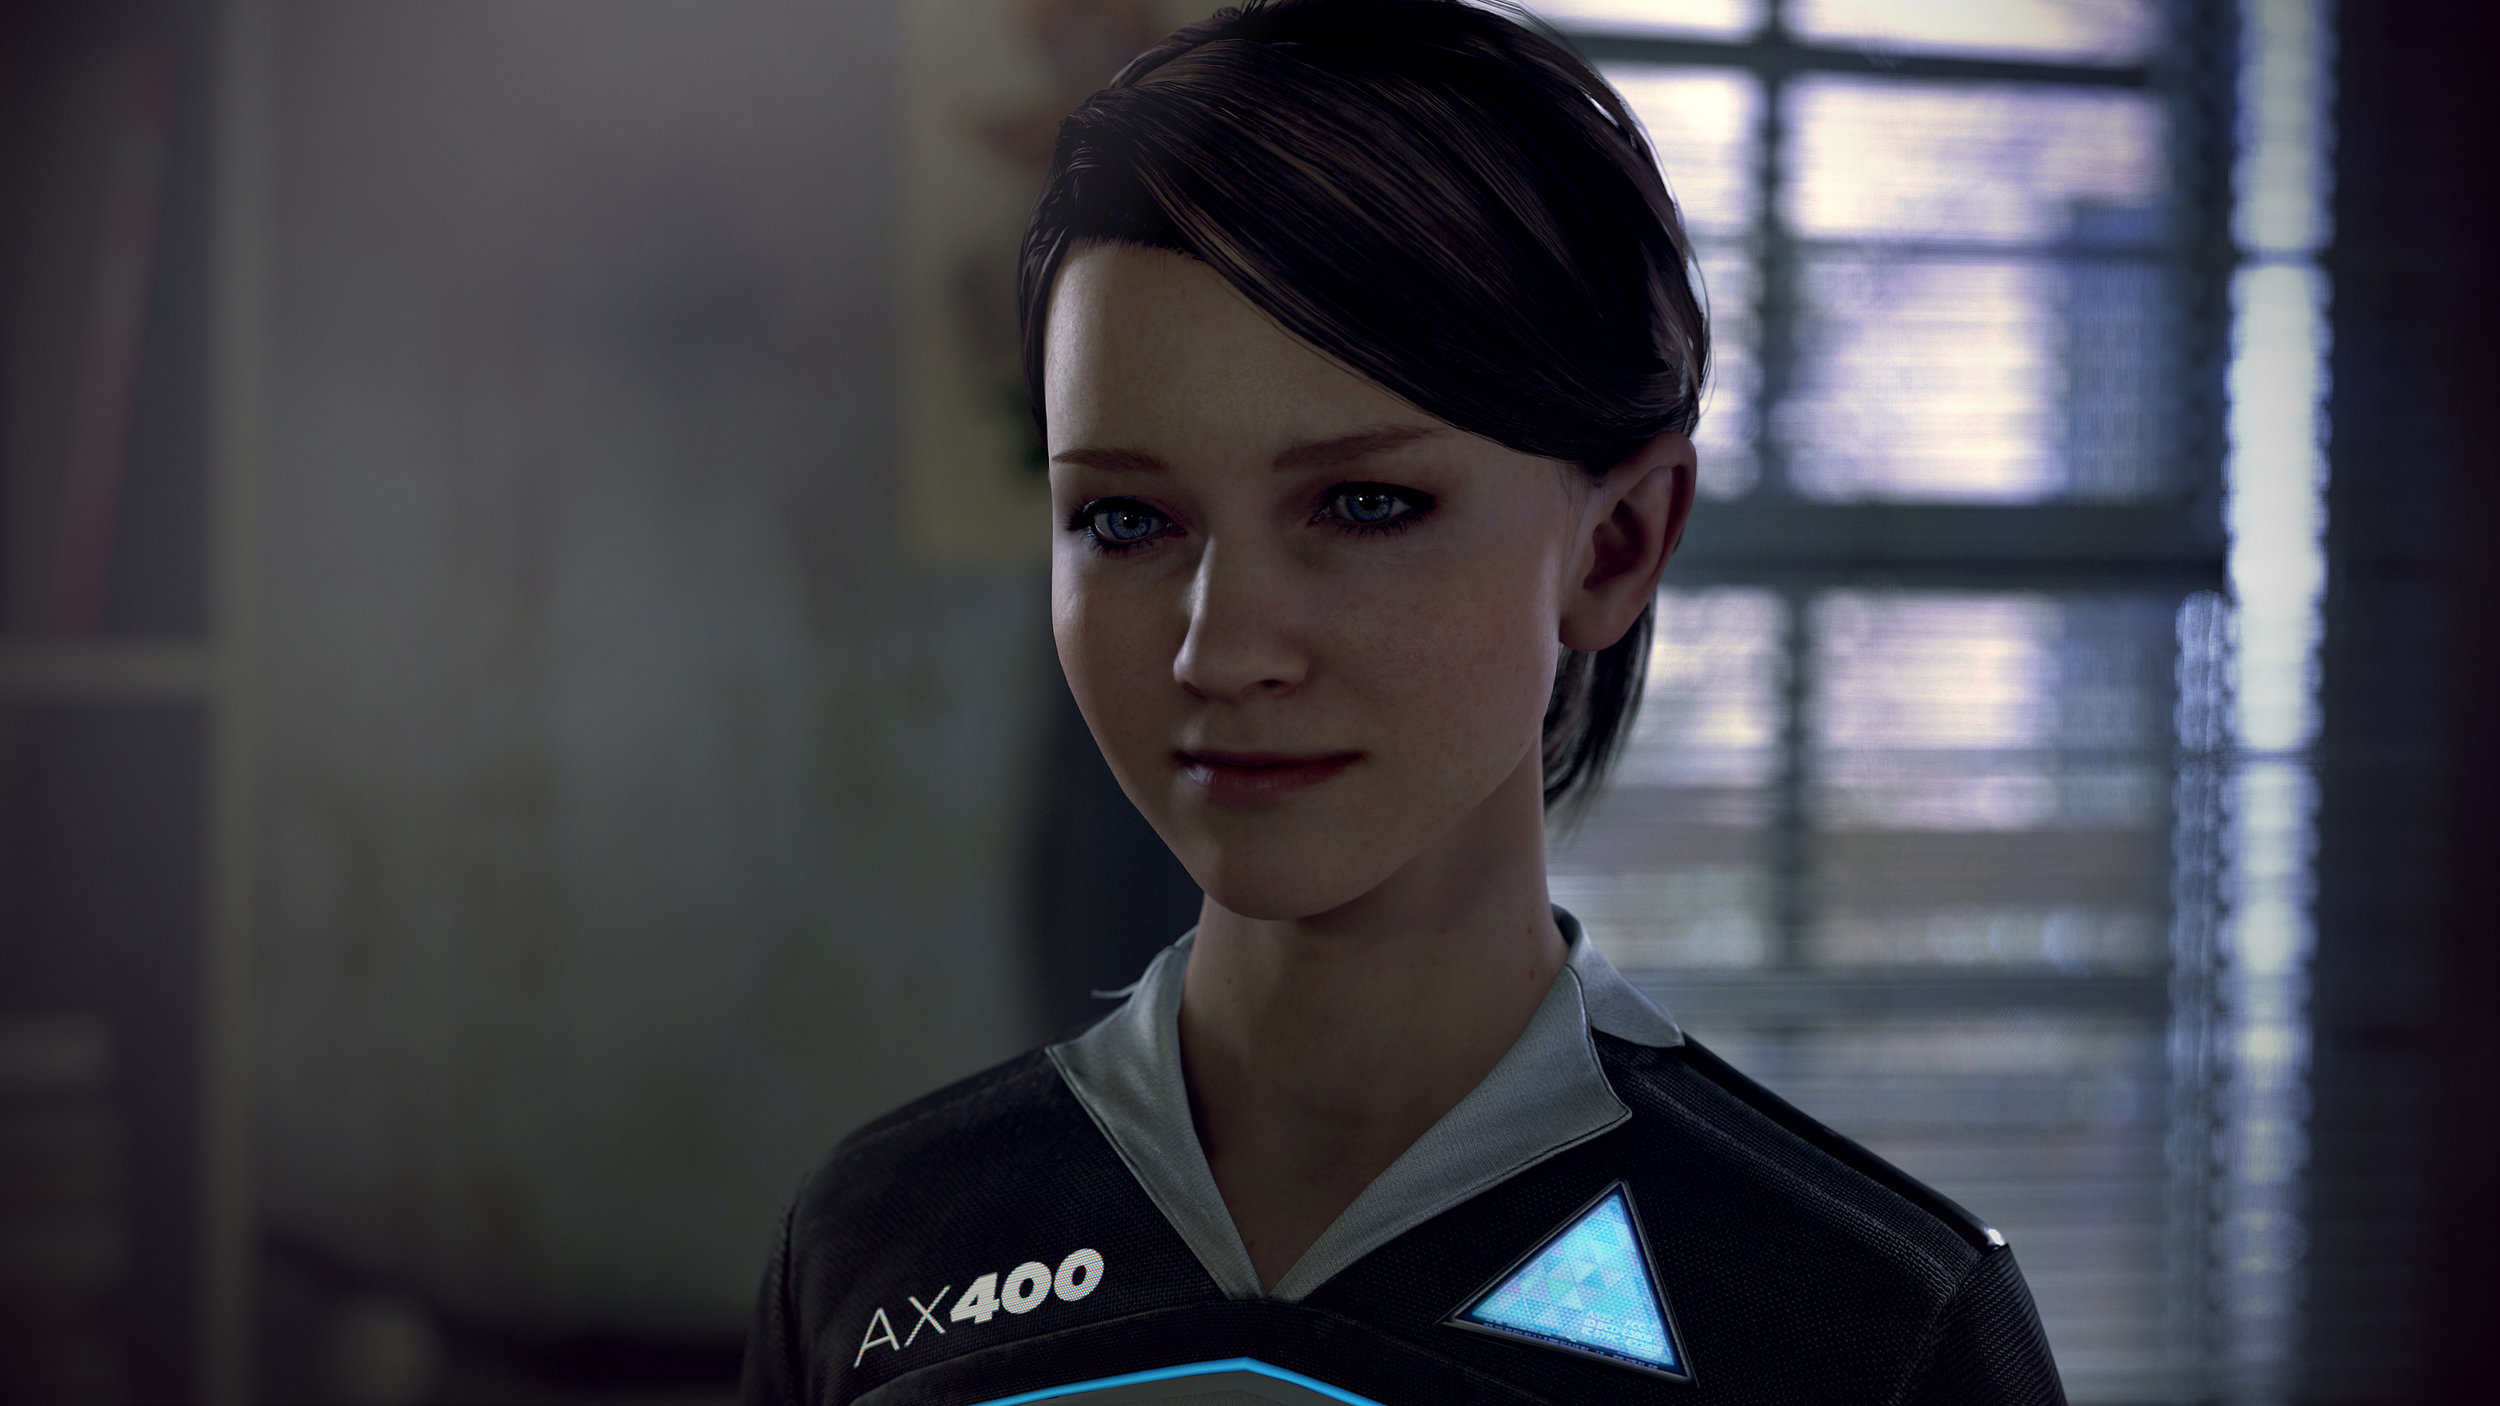 detroit-become-human-screen-01-ps4-us-13apr18.jpg